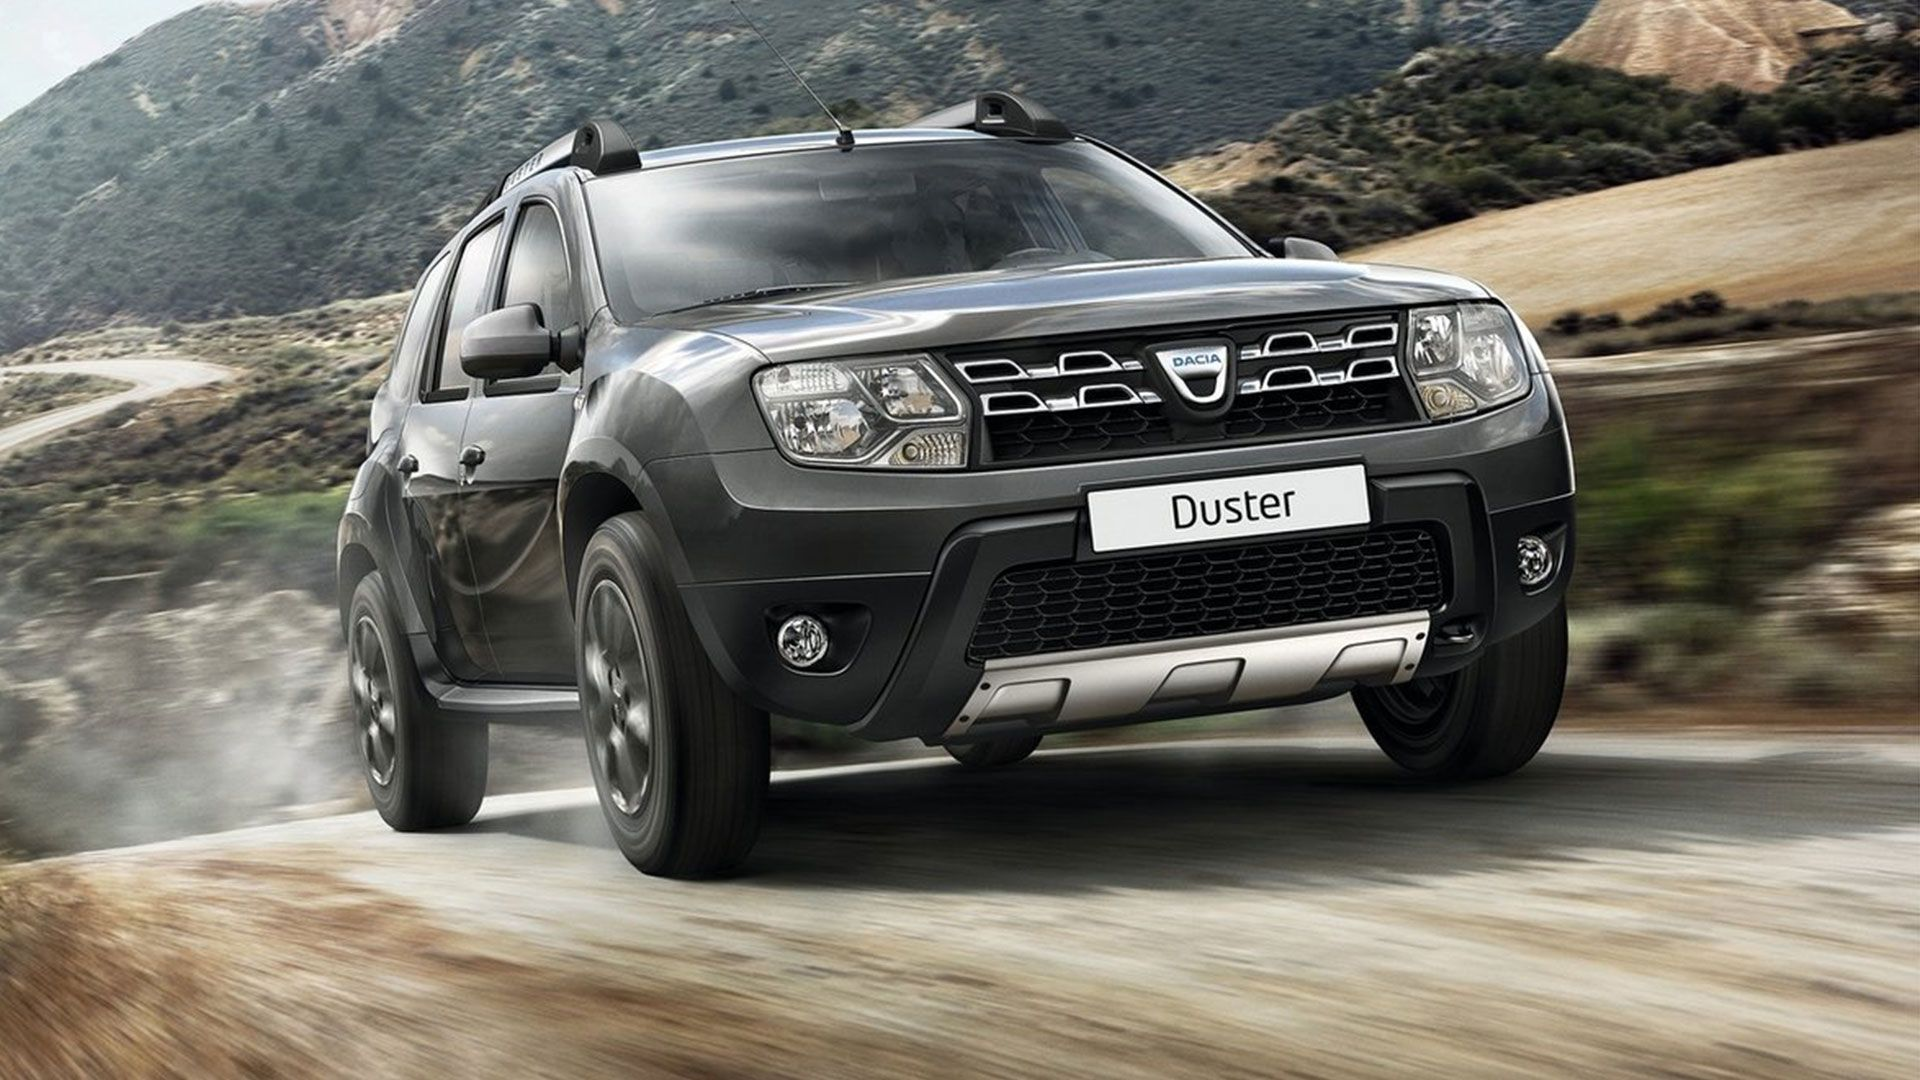 Download The Latest 2014 Renault Duster HD Wallpaper & From